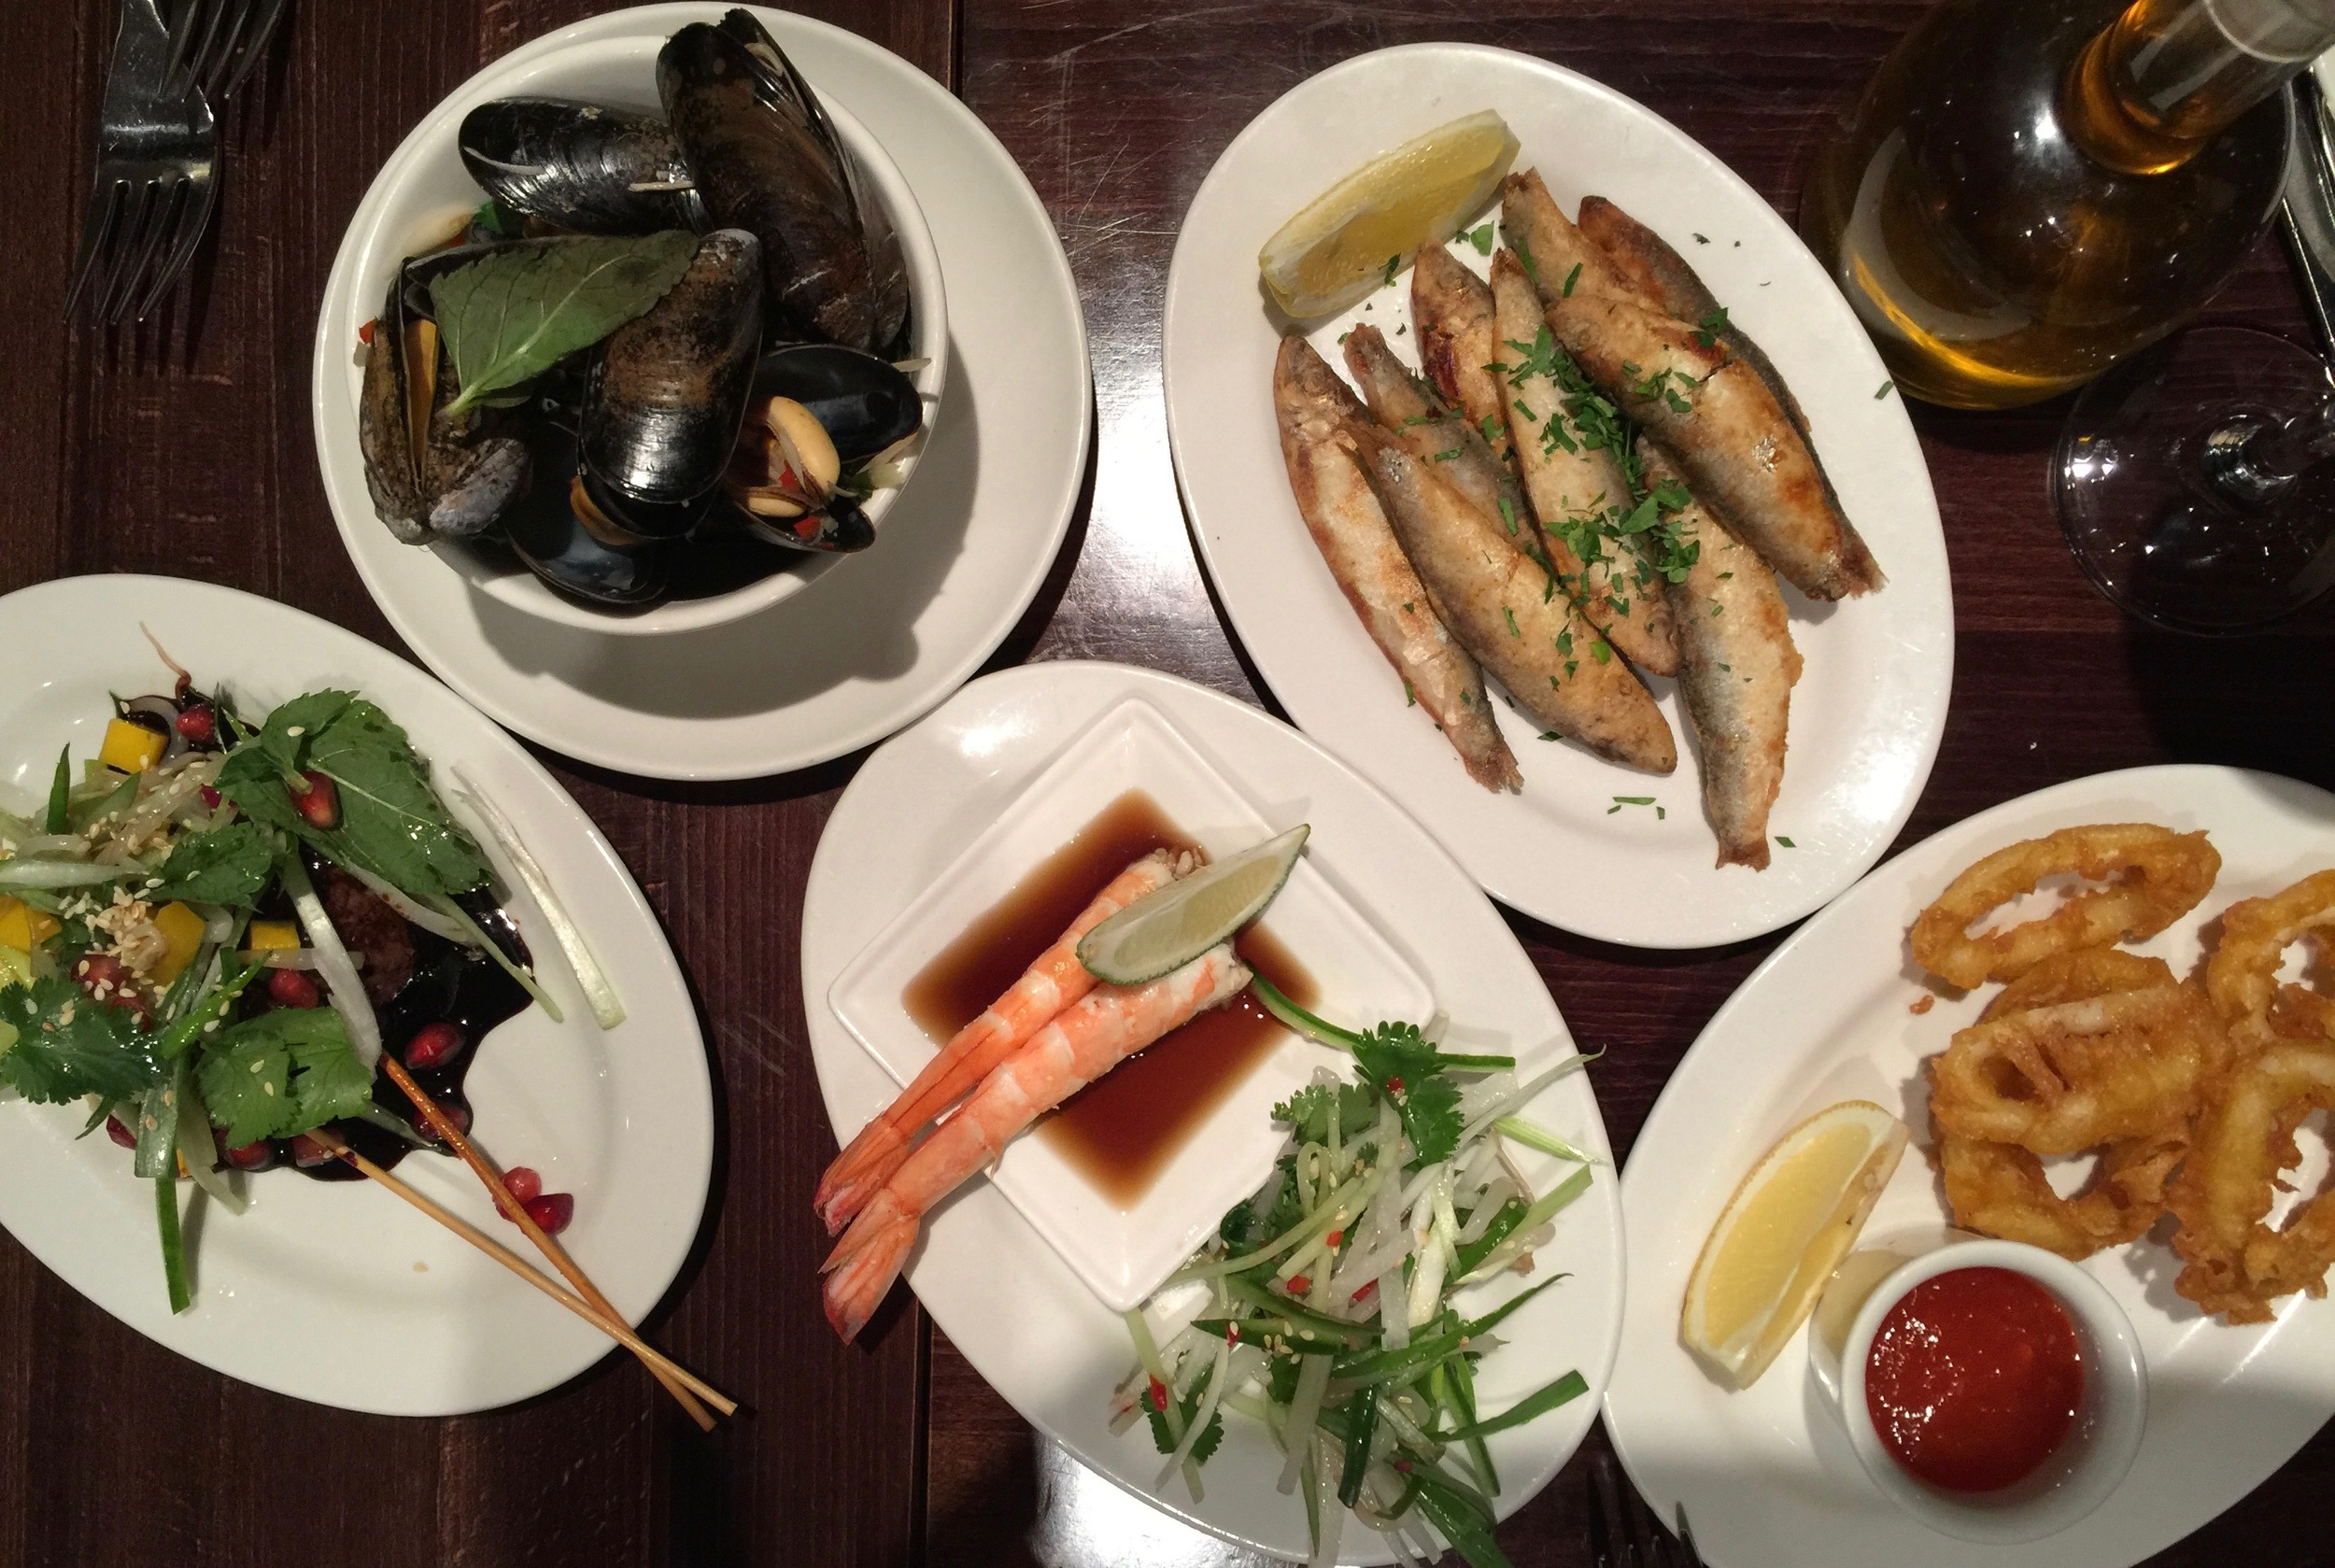 Webbe's offers small tasting dishes, so we shared Mussels with lemon grass, chili and coriander; Fried Sardines; Tempura battered calamari with chili jam; Prawns with soy & Thai salad;and Beef skewers with tamarind, soy sauce, pomegranate &mango salad.